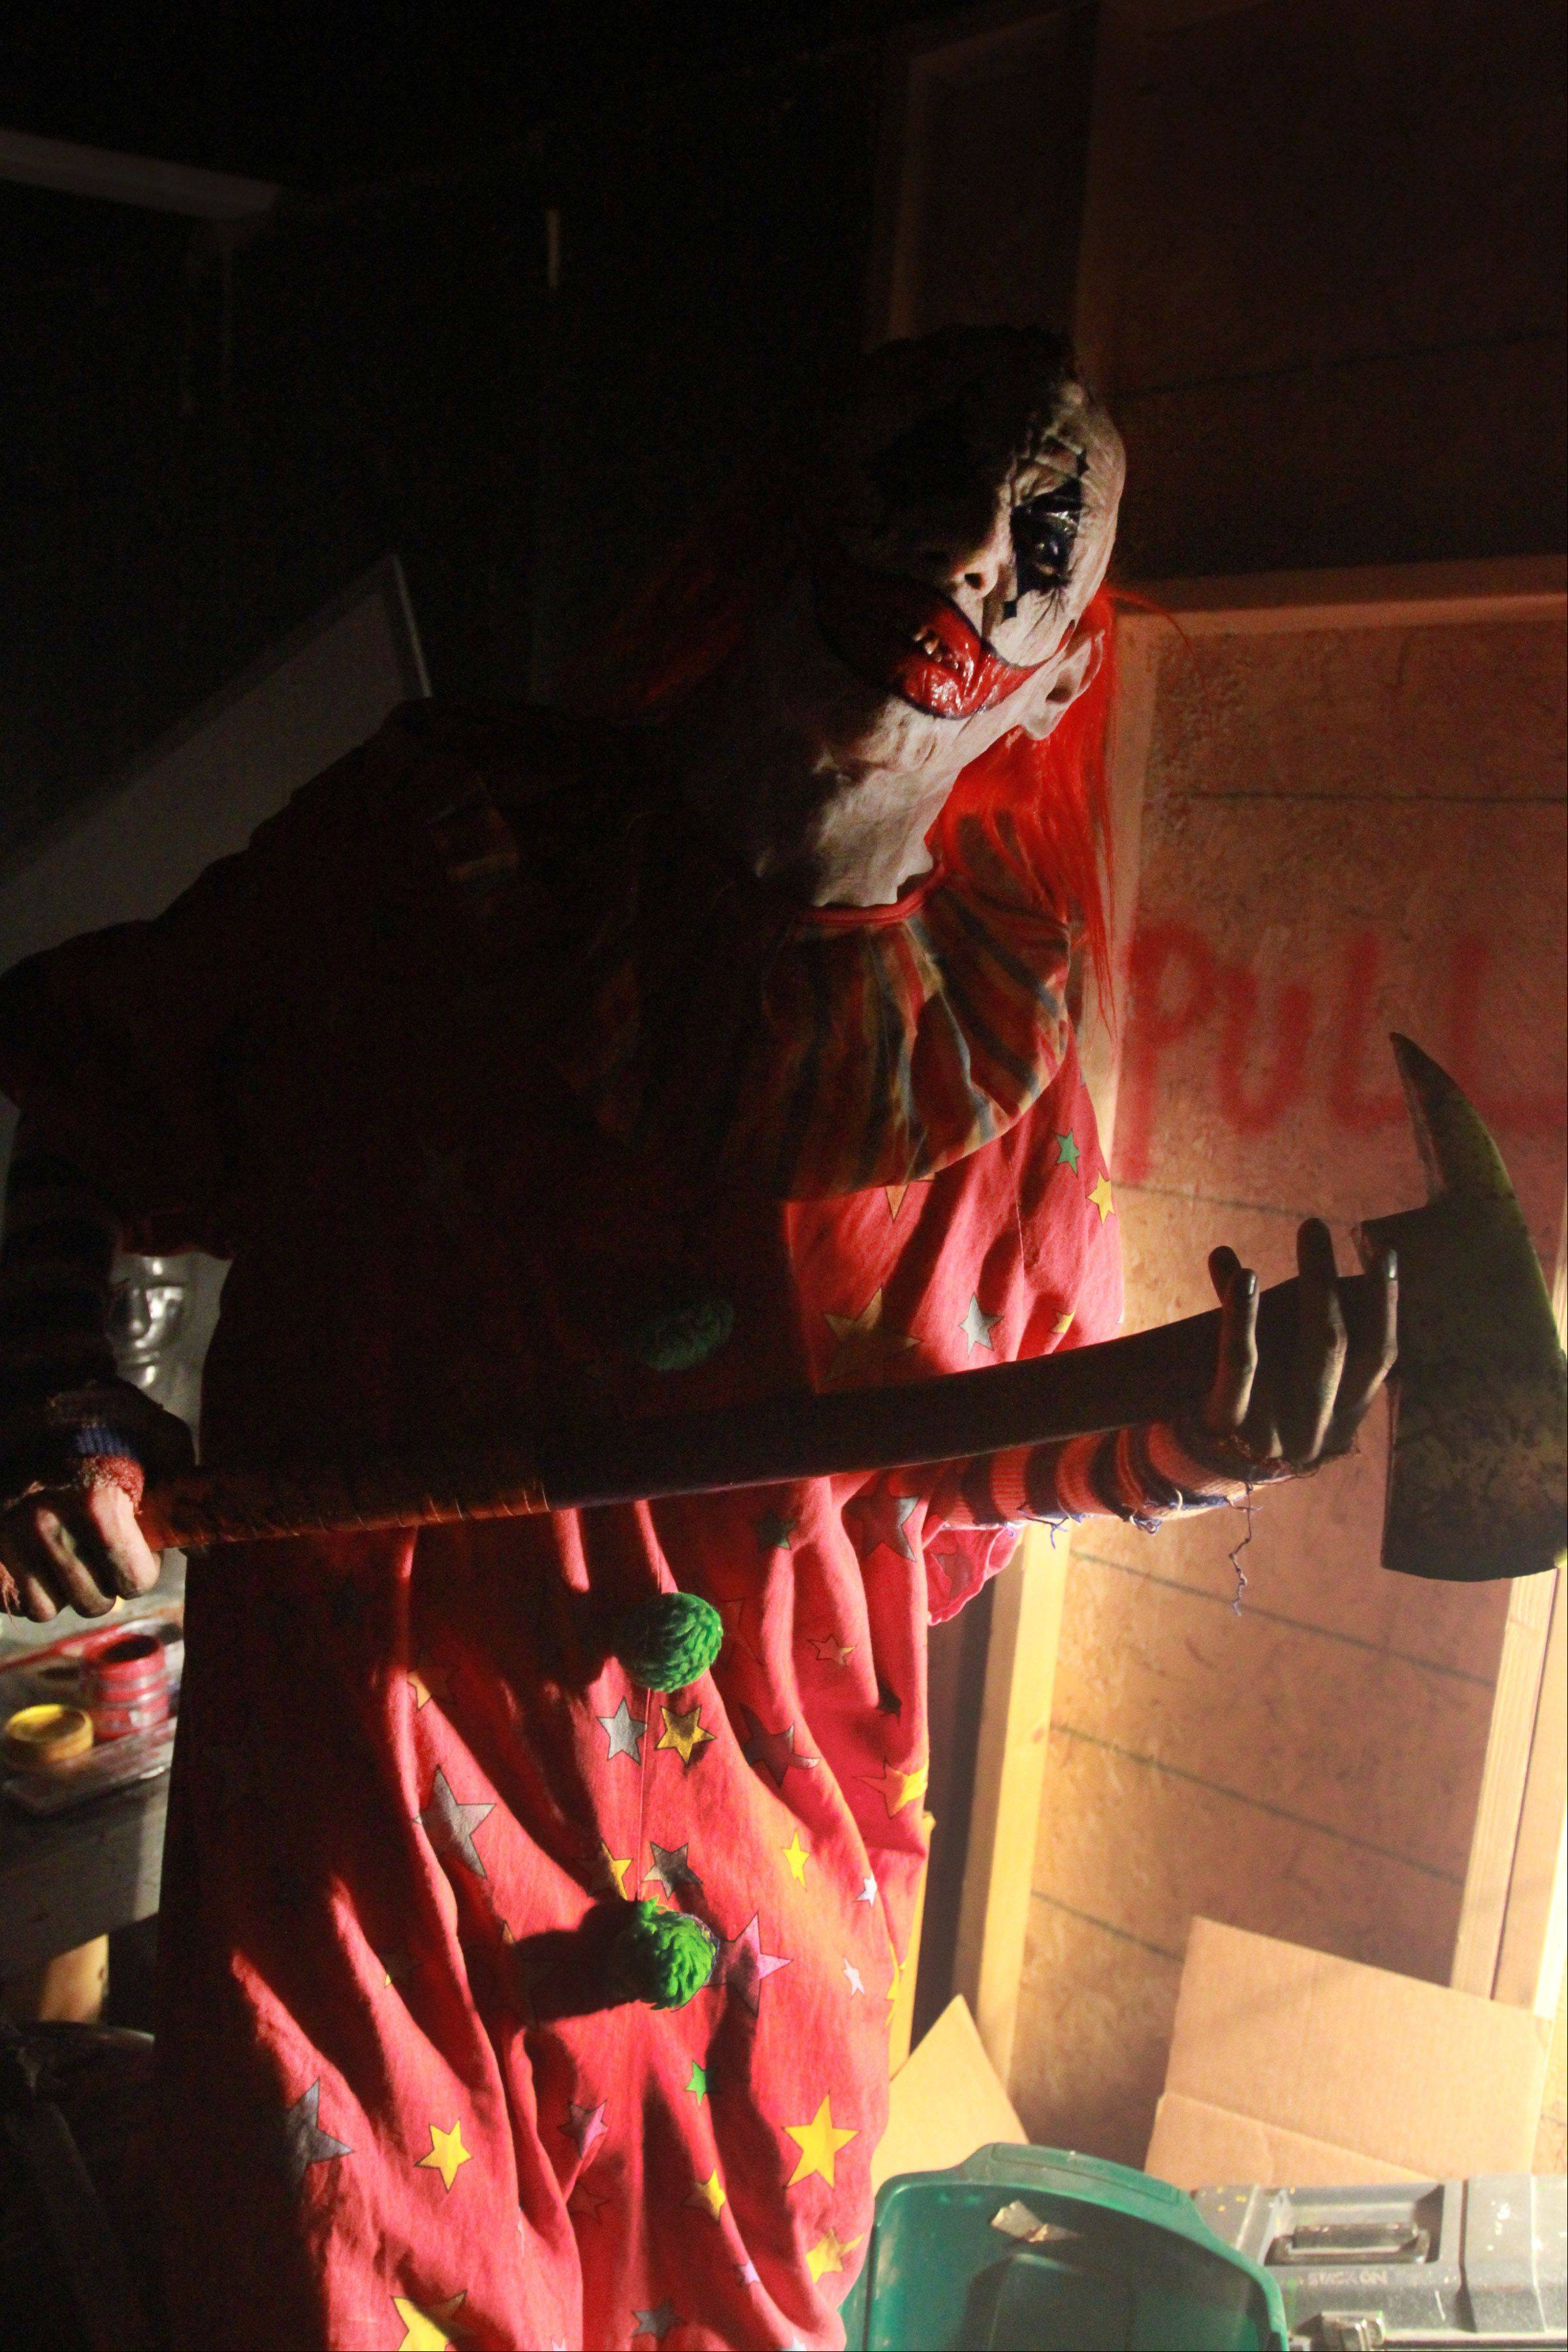 CarnEvil the clown (played by James Caraway of Rockford) scares visitors to CarnEvil, new haunted attraction at the Sears Centre in Hoffman Estates.